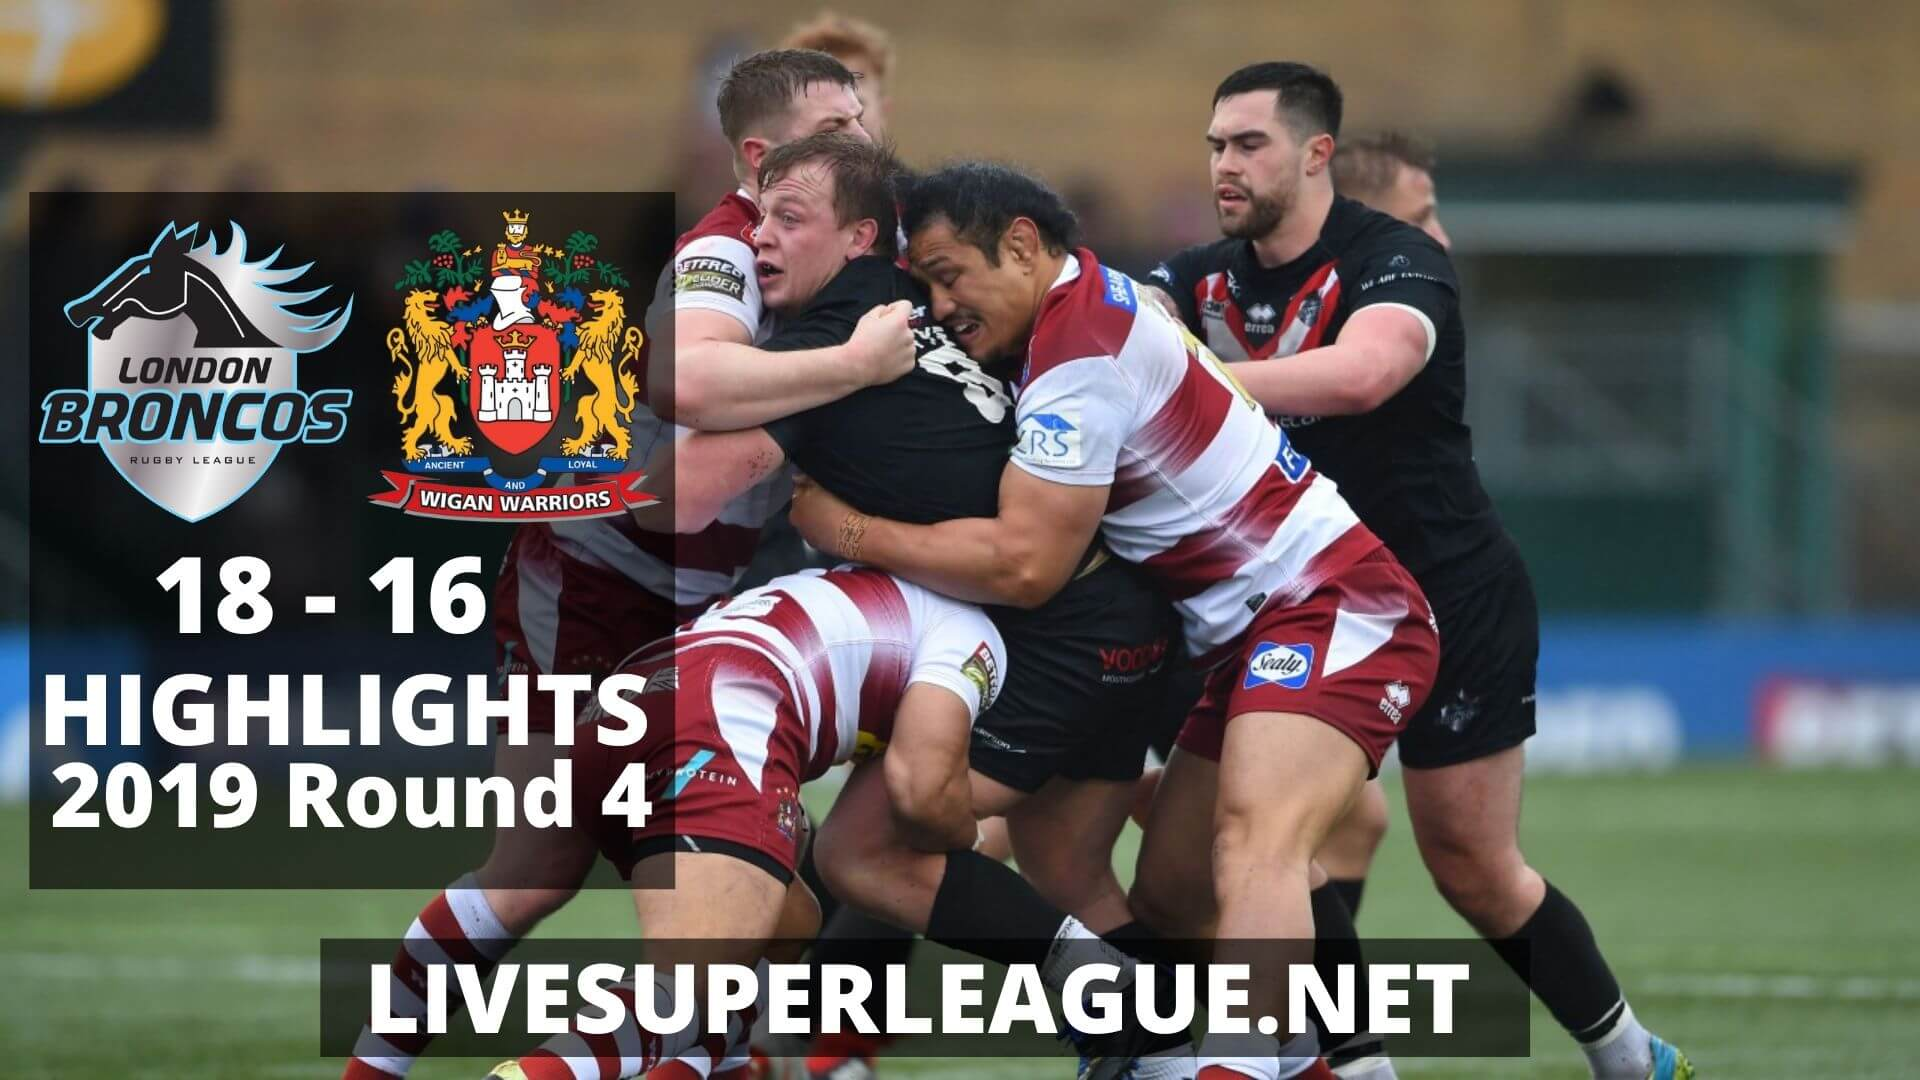 London Broncos Vs Wigan Warriors Highlights 2019 Round 4